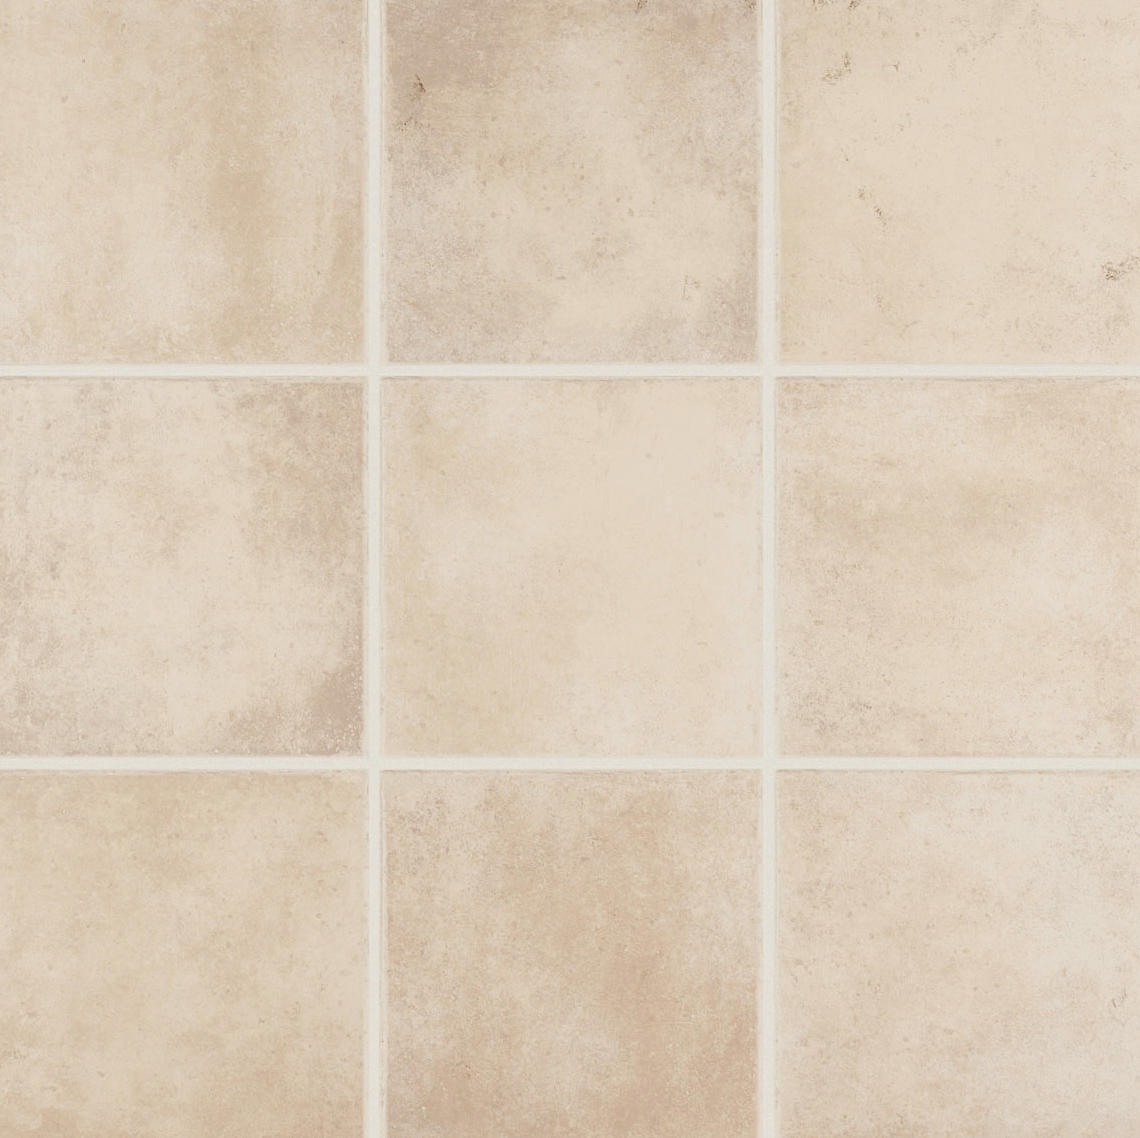 Cotto Americana Beige Ceramic Tiles From Crossville Architonic